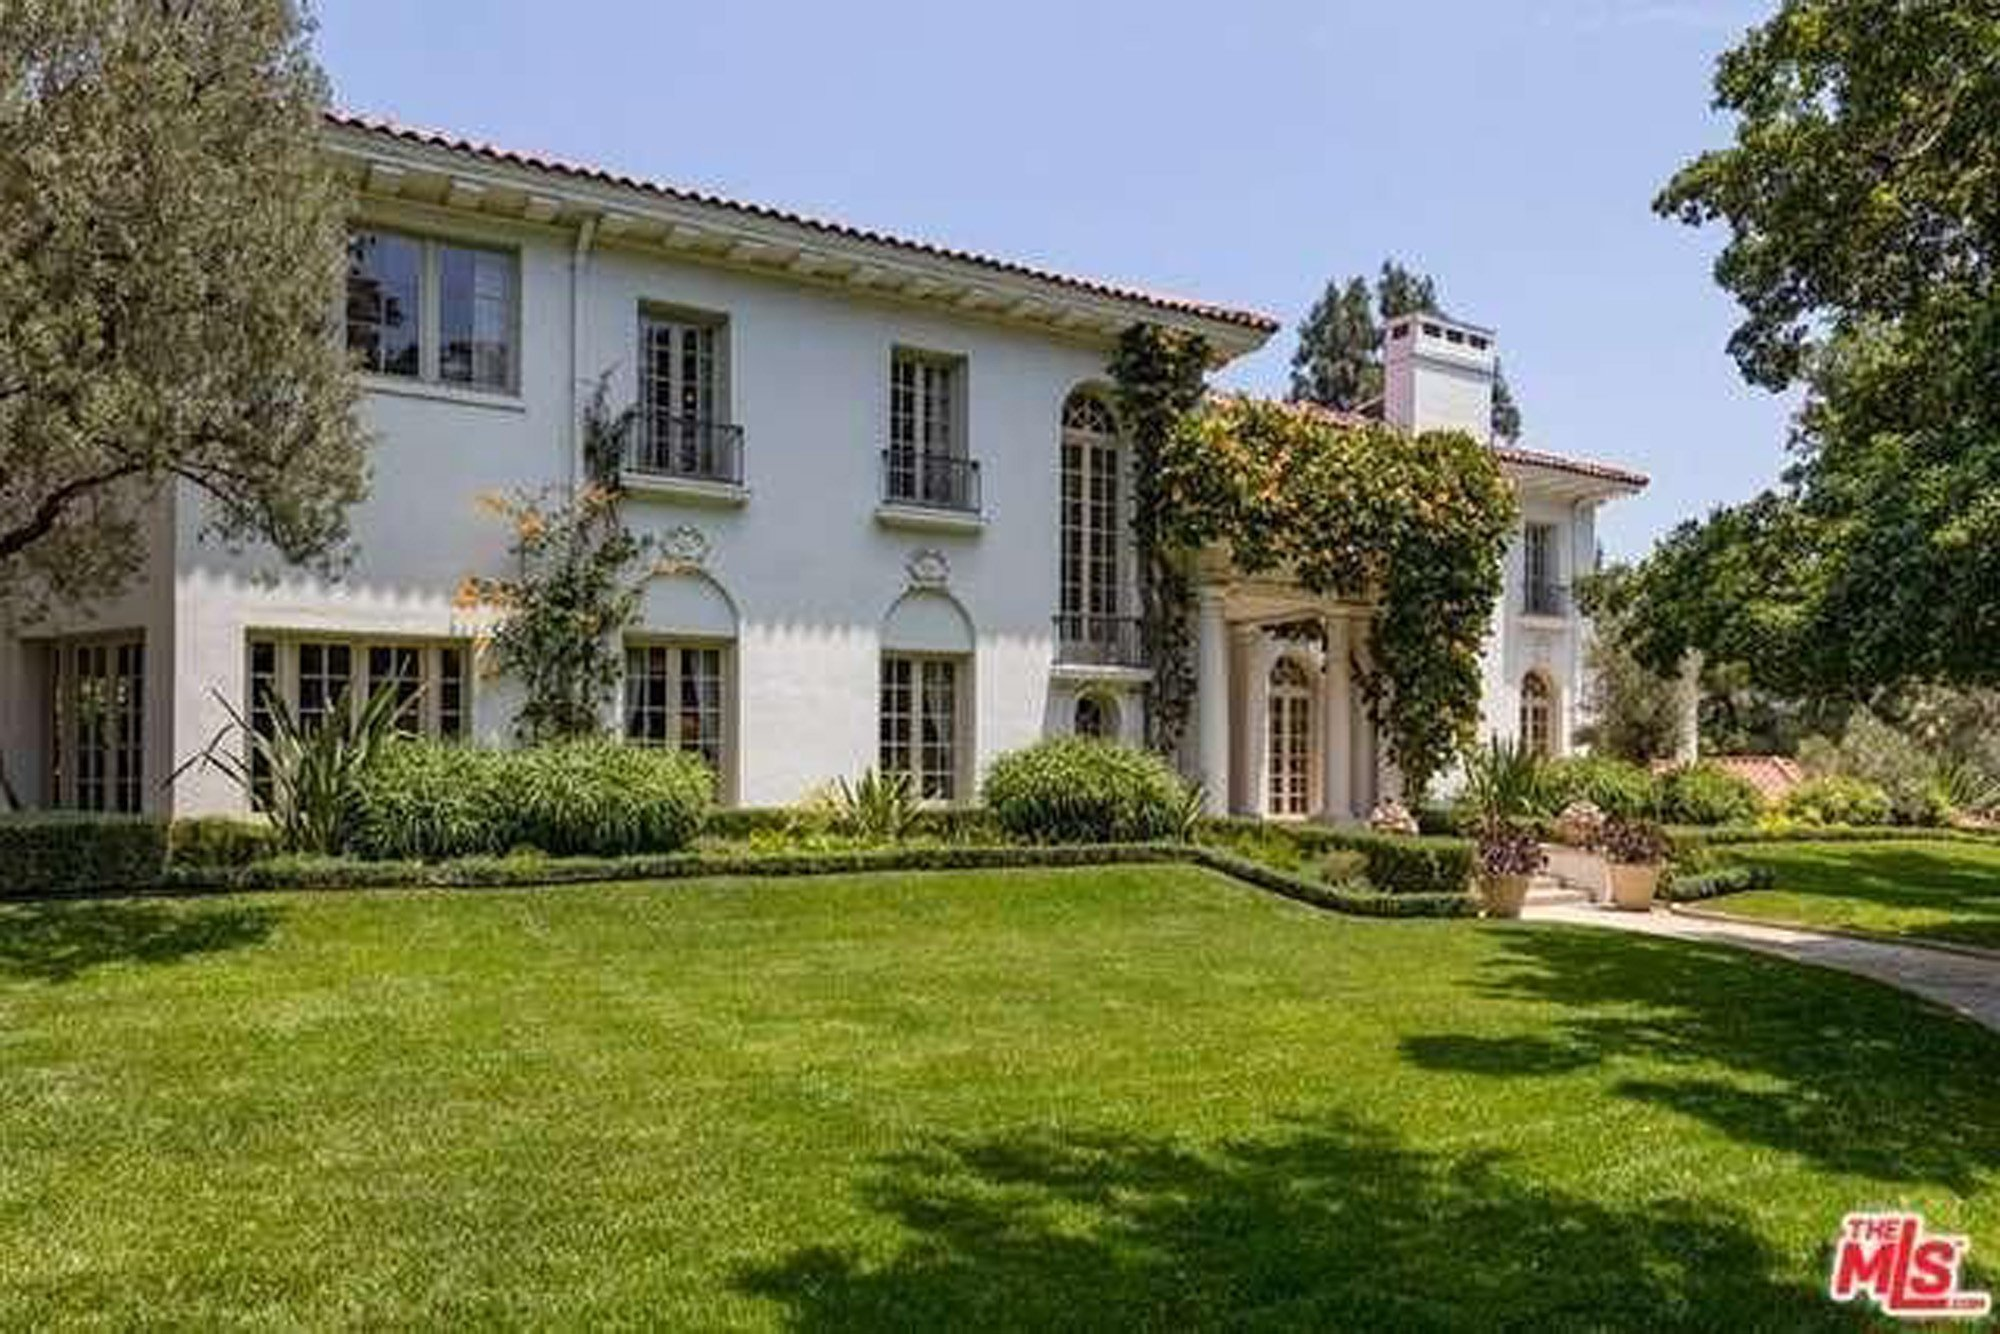 The massive new home that Angelina Jolie bought